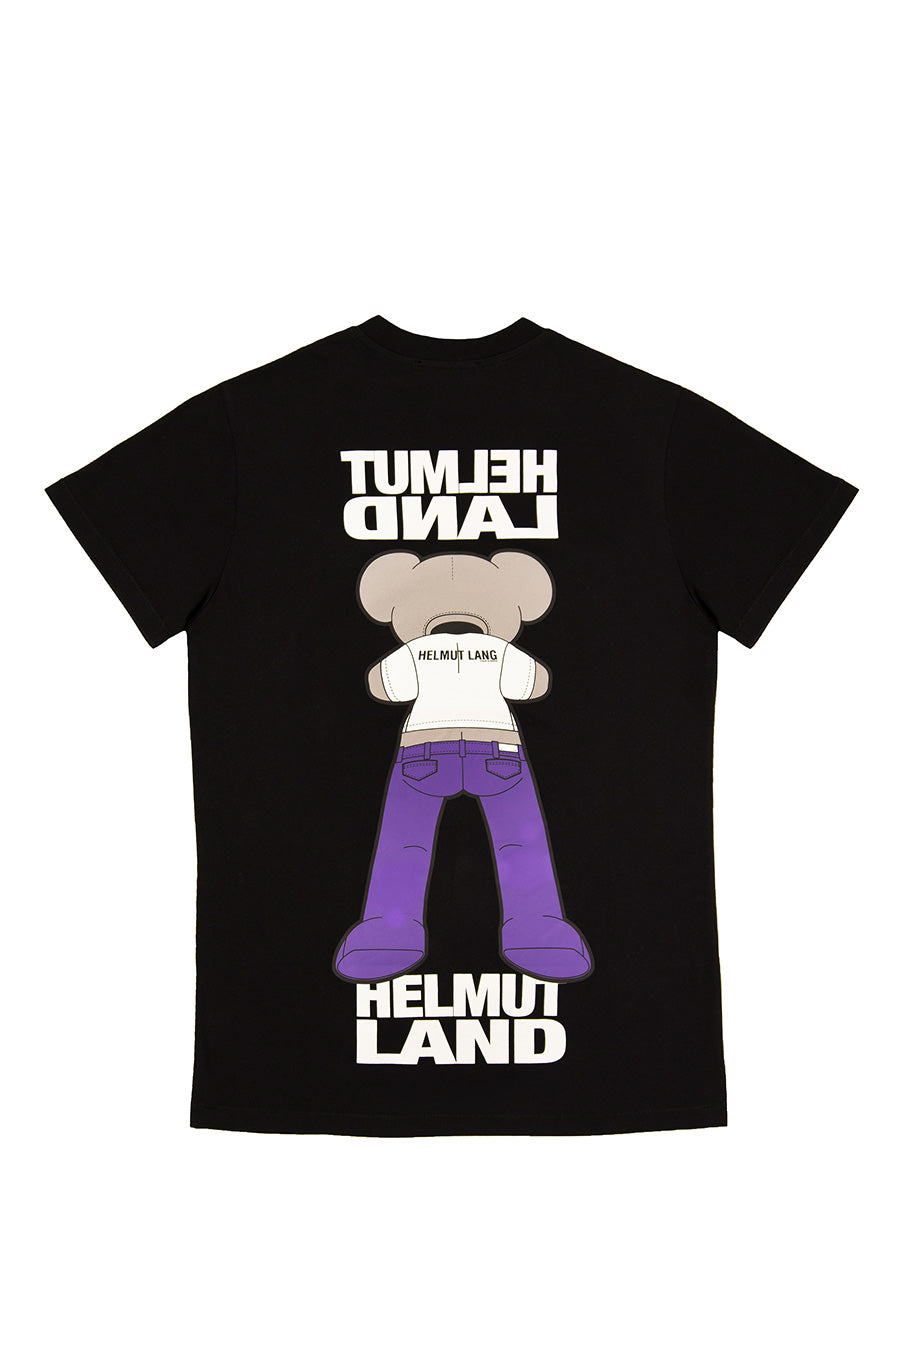 Helmut Lang - Black Helmut Land Mascot T-Shirt | 1032 SPACE